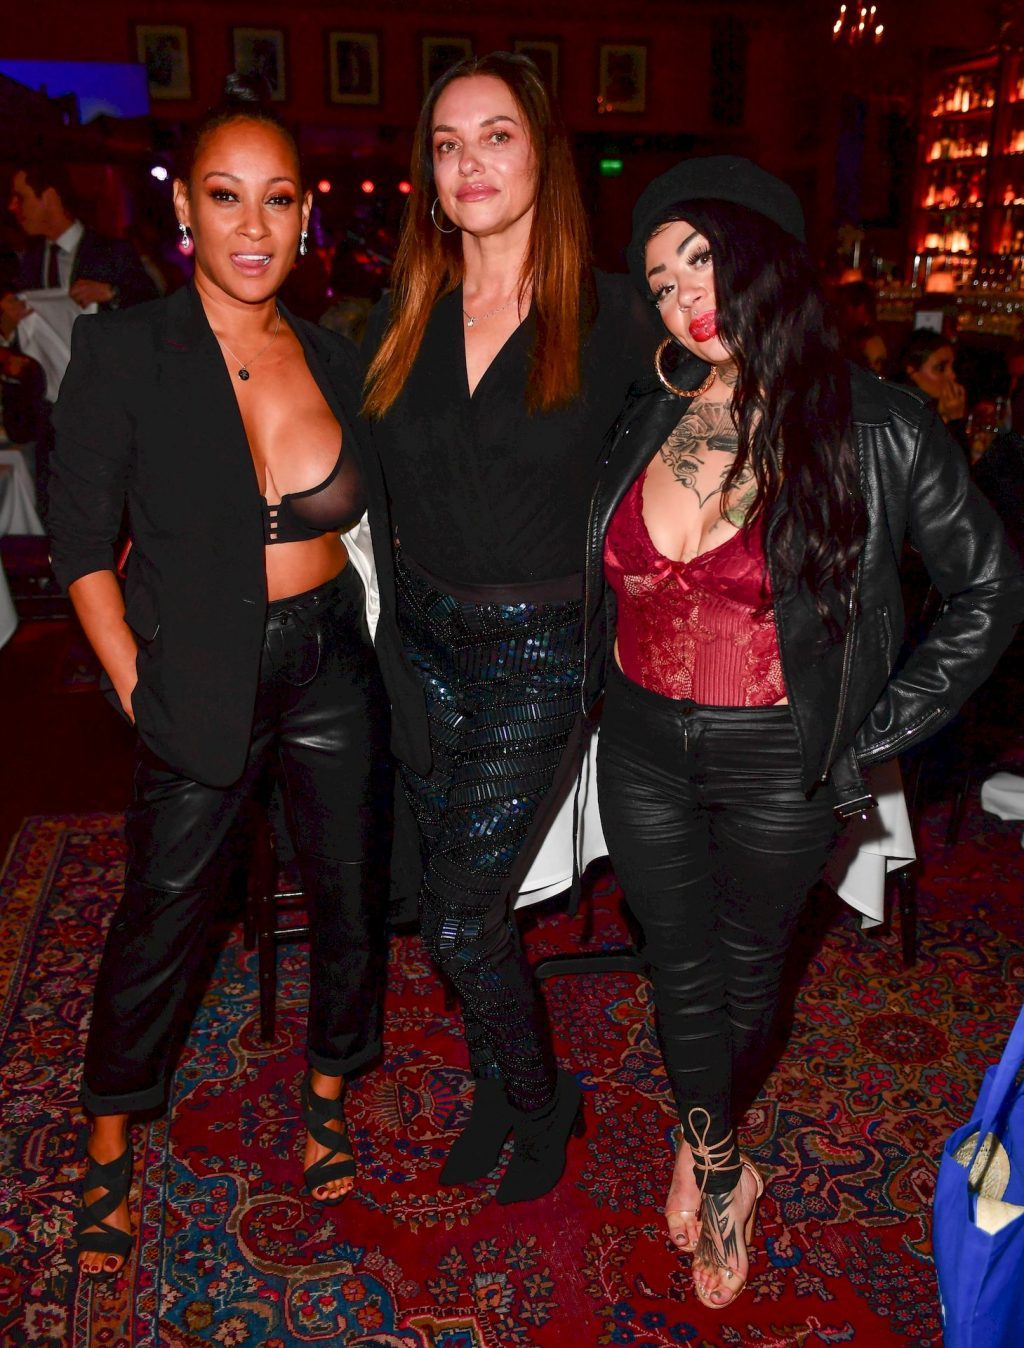 Lisa Maffia Shows Her Tits at the Boisdale 2019 Music Awards (5 Photos)